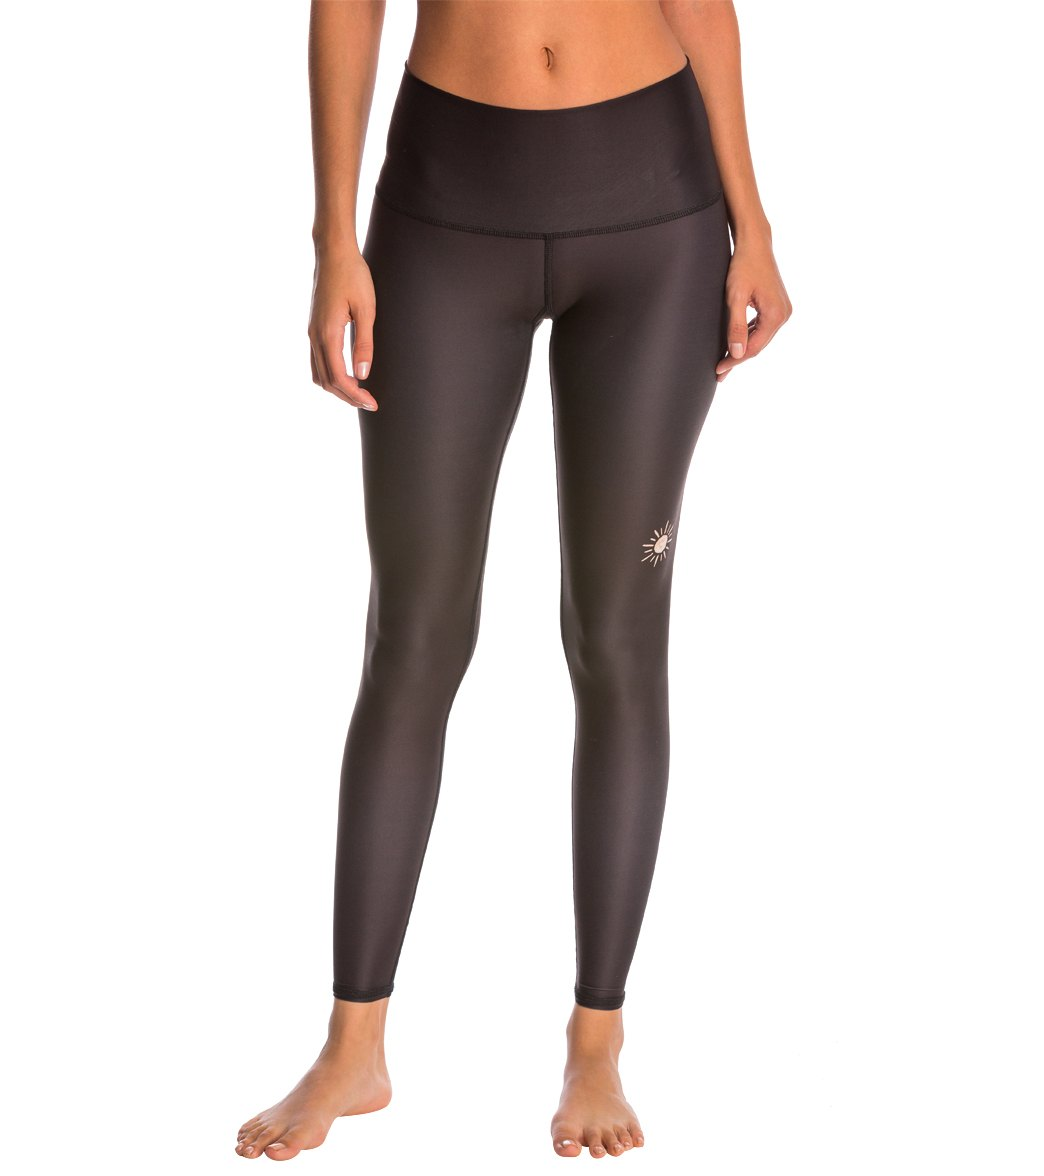 af2bfefe0b0127 Women's Yoga Printed Leggings at YogaOutlet.com